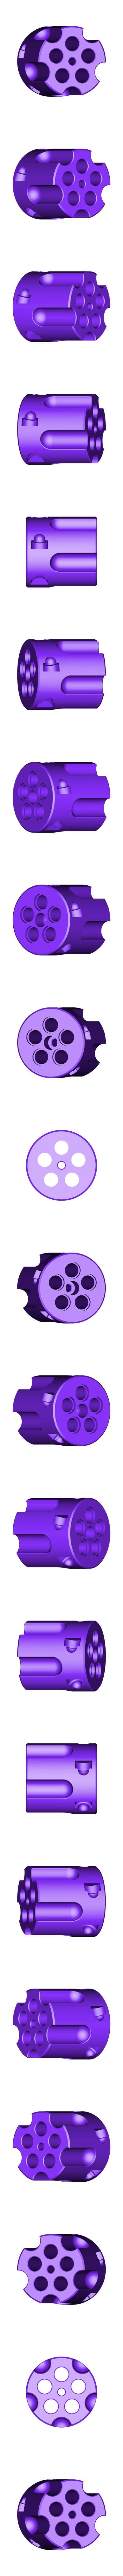 5_round_cylinder.stl Download free STL file Revolver Cylinder Exercise (HOW TO 3,4,5,6 & 12 shots) • 3D printer model, MuSSy